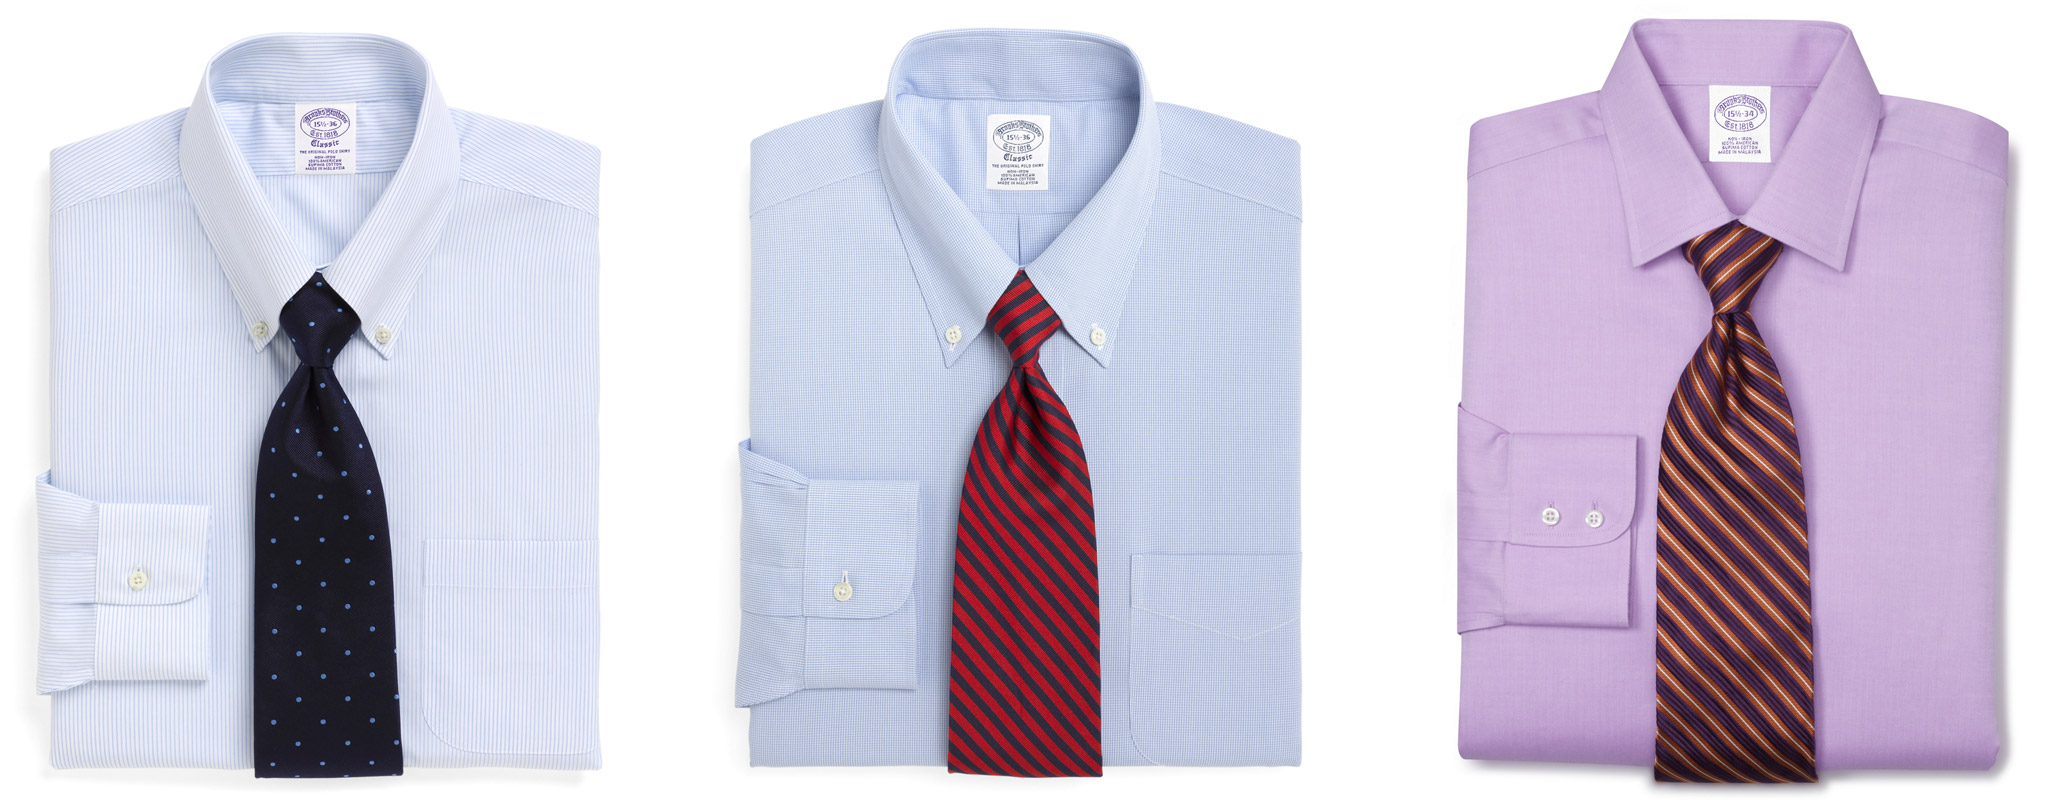 42ad91b9c7 How to Match Your Shirt And Tie: Mixing And Matching Patterns